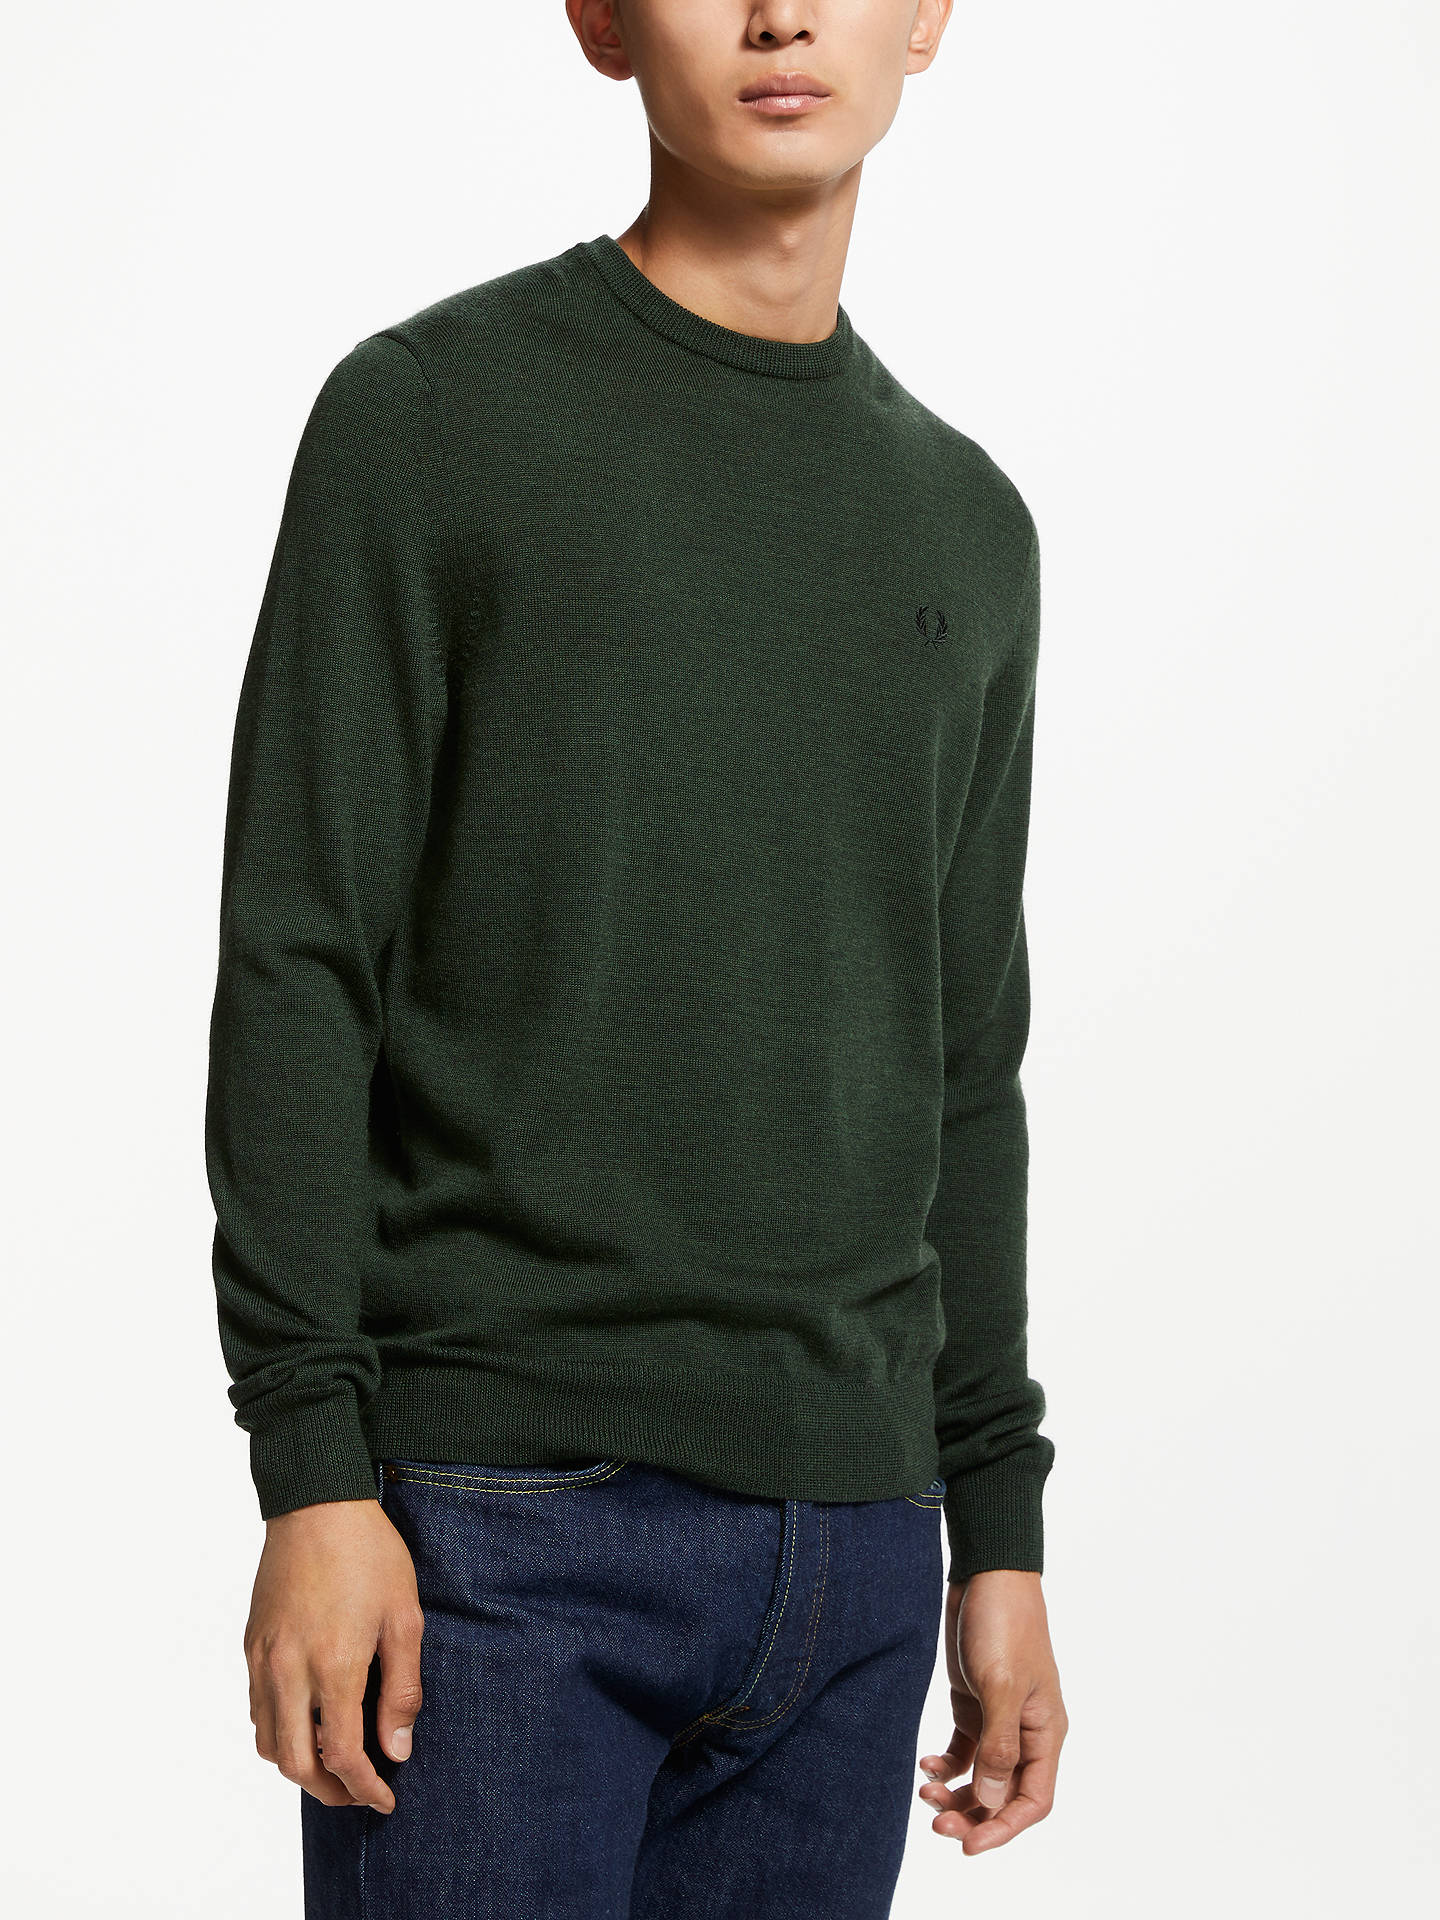 dbccd7f9a2a Fred Perry Classic Crew Neck Jumper, Green